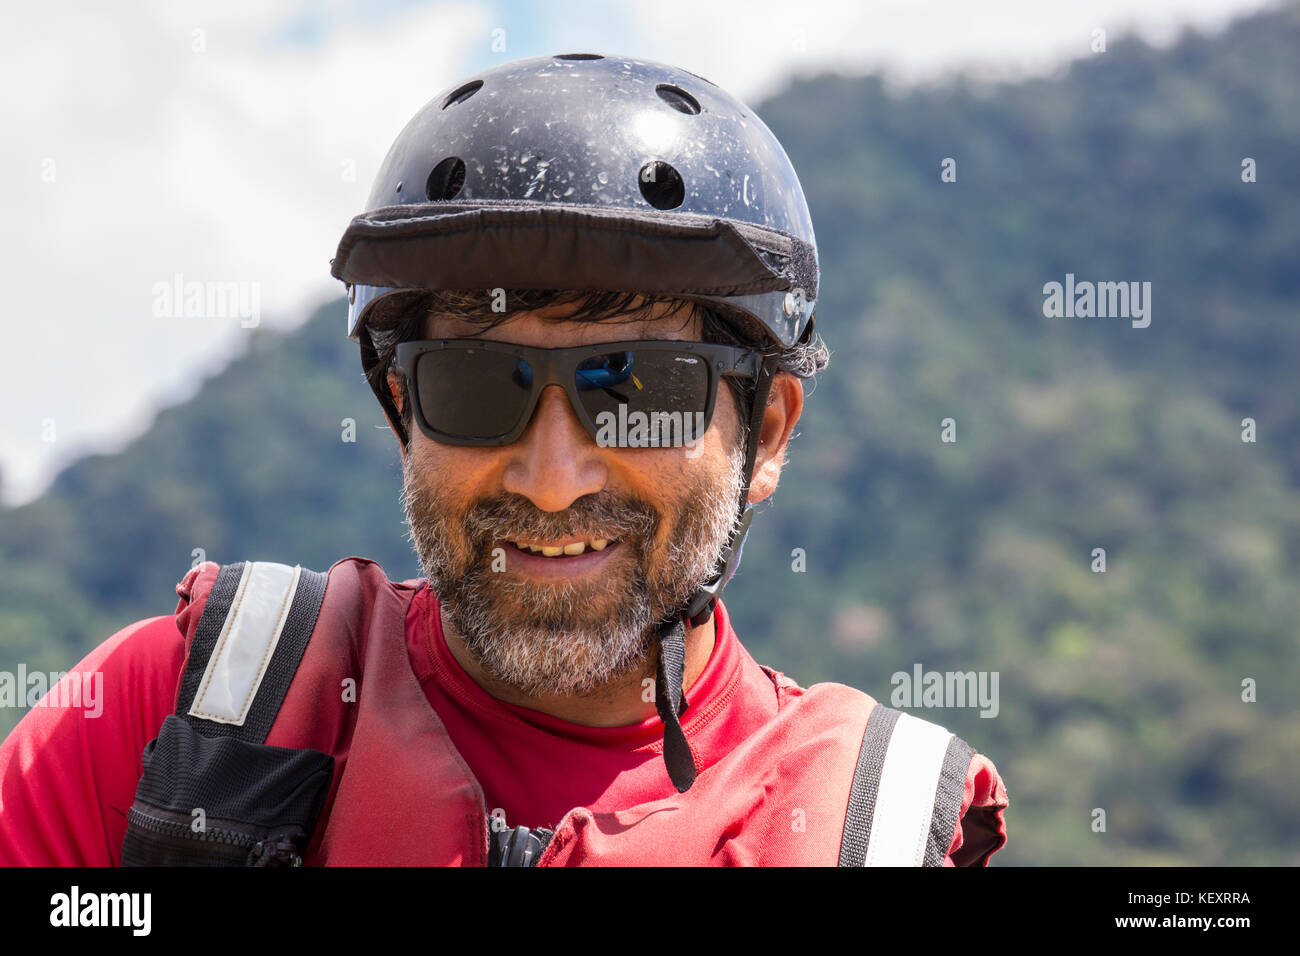 Man with helmet smiles while on a river expedition in Manu National Park, Peru. - Stock Image